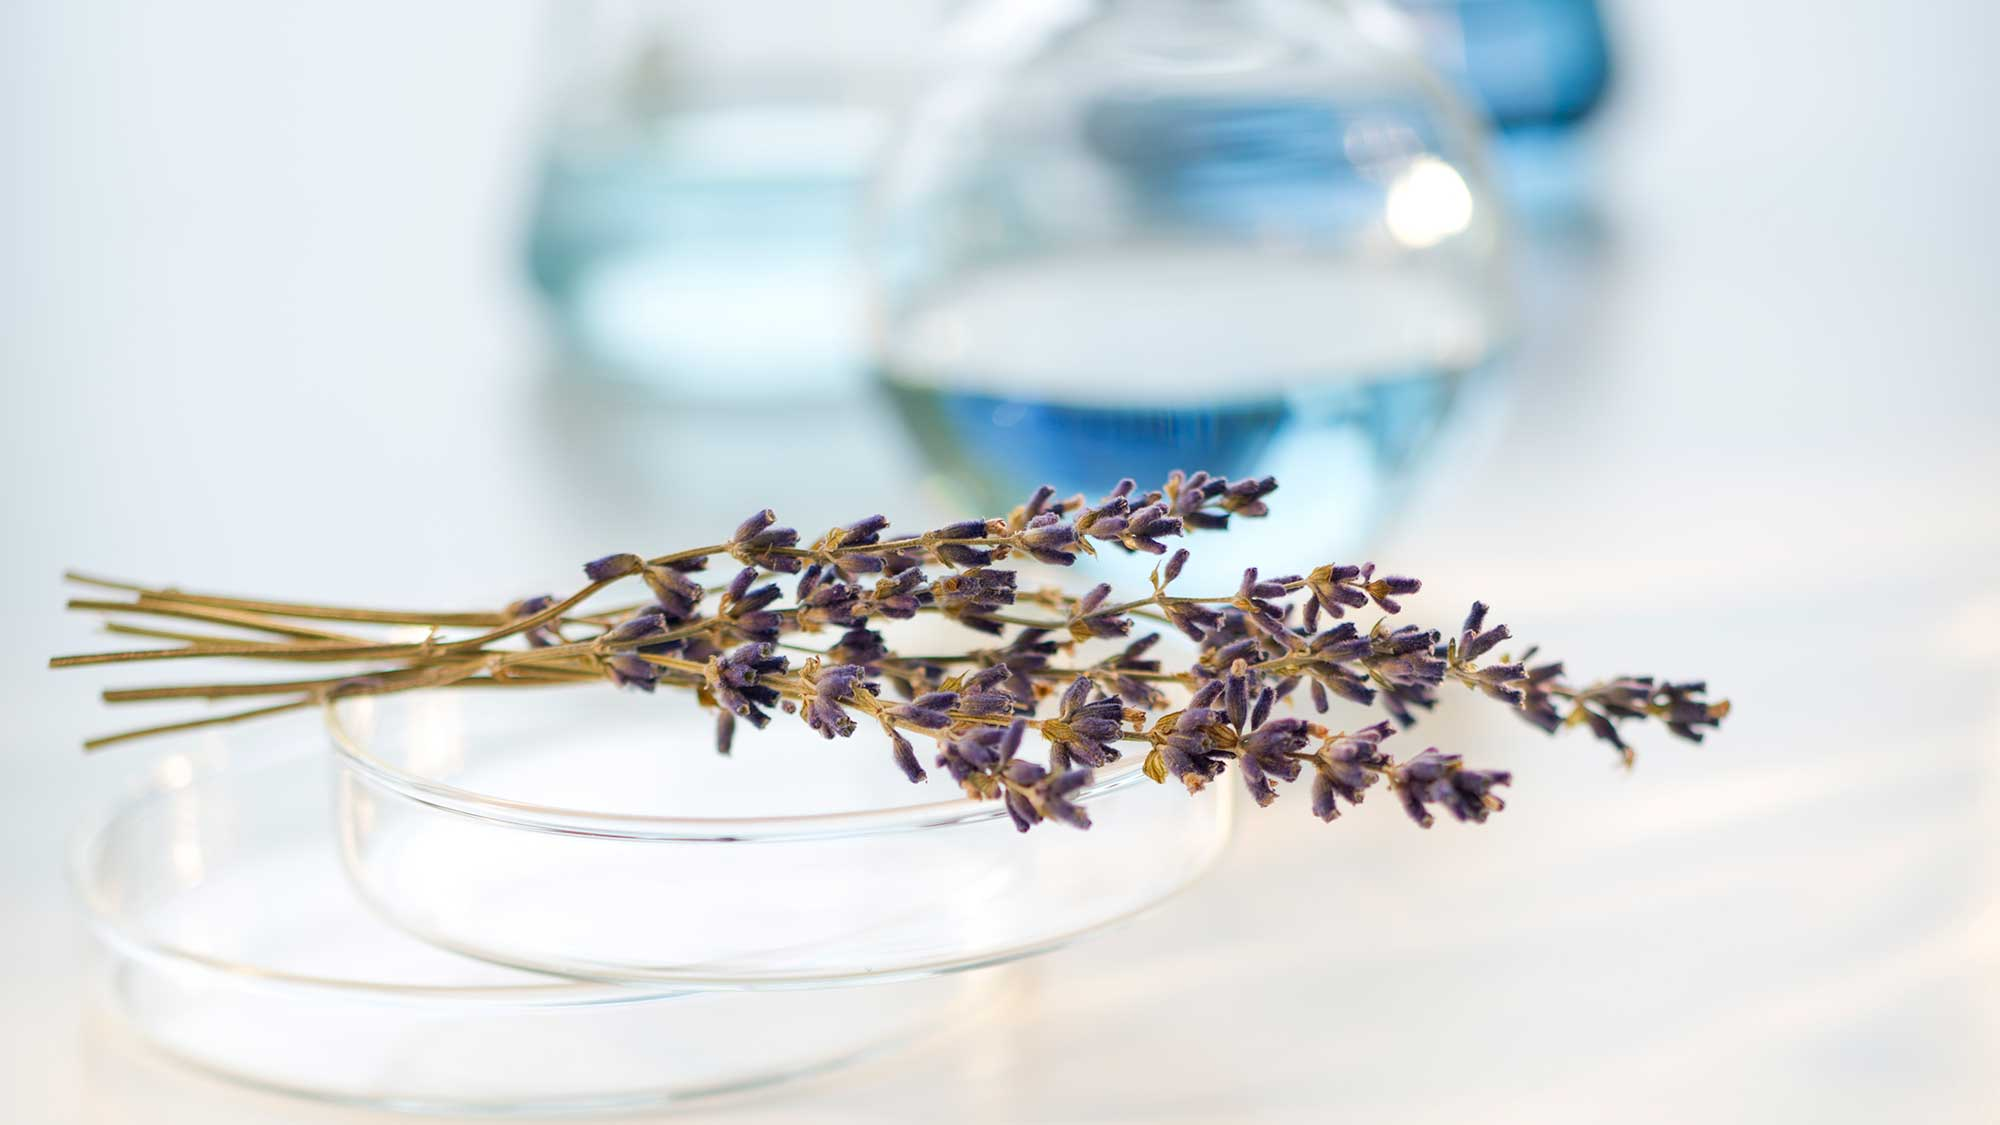 A lavender sprig and other potential ingredients.